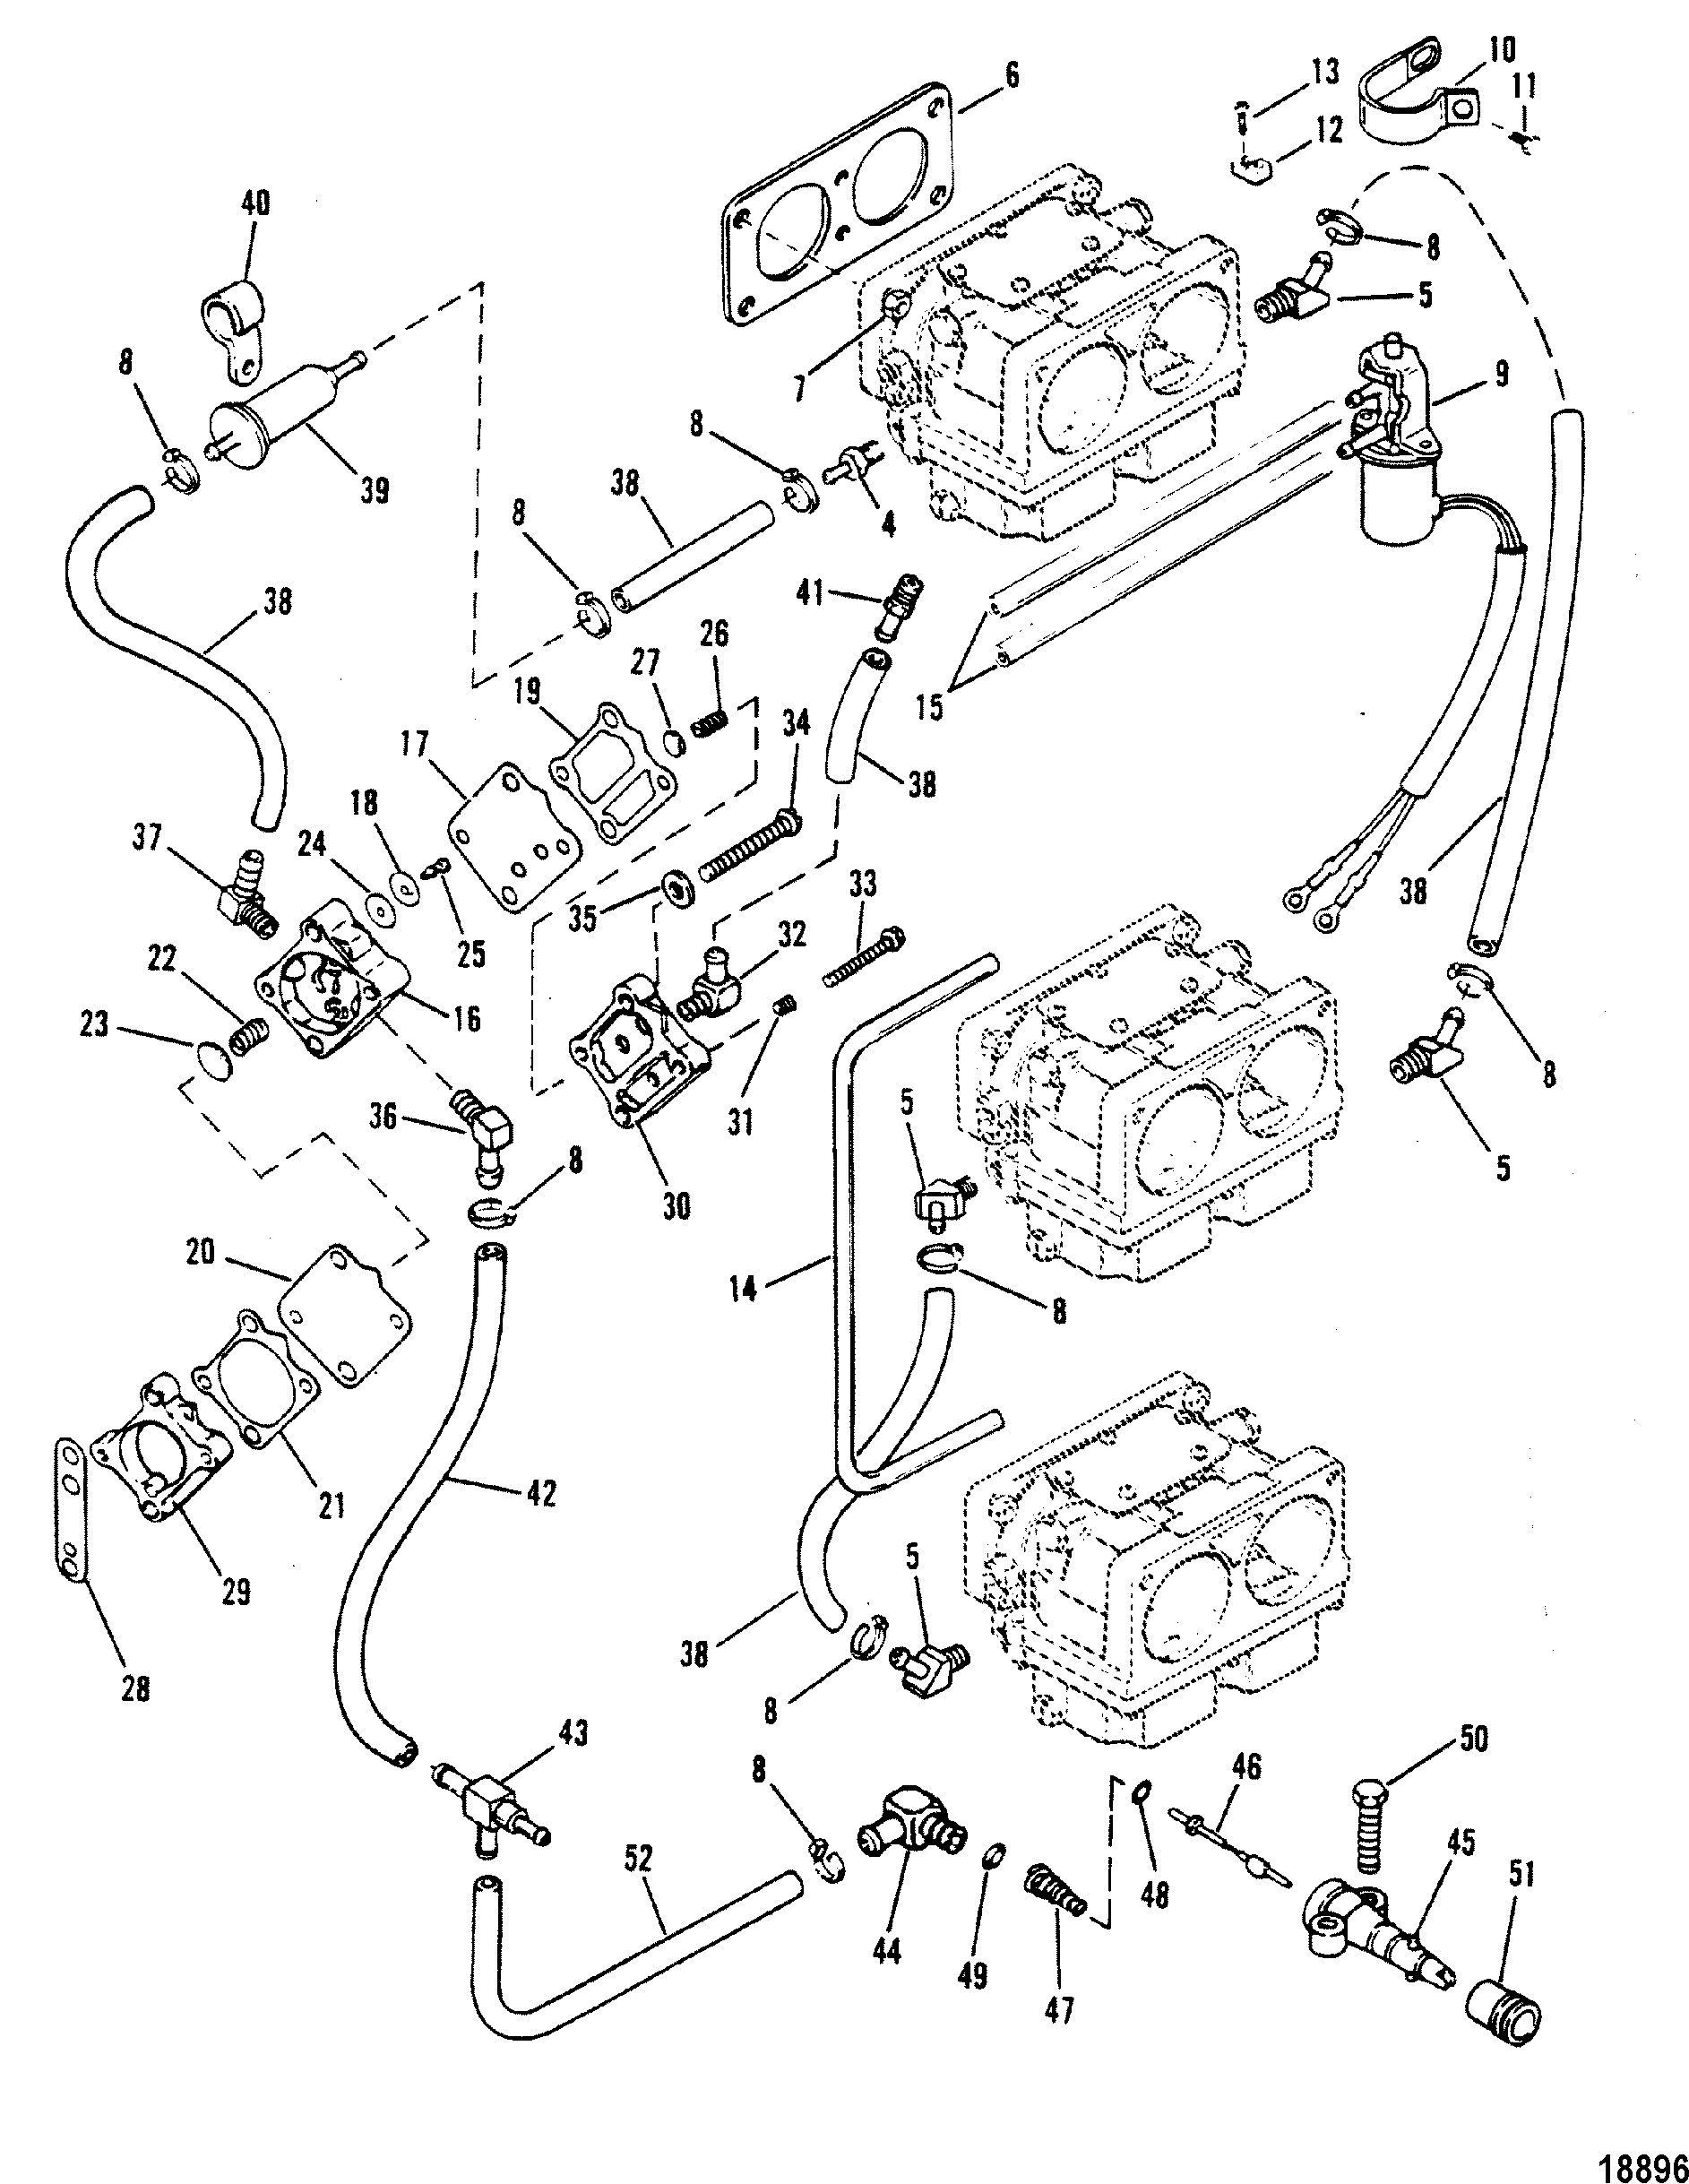 150 Hp Mercury Outboard Oil Line Diagram Wiring Diagrams 1988 Xr2 Fuel Pump Square For Mariner Sea Ray 135150